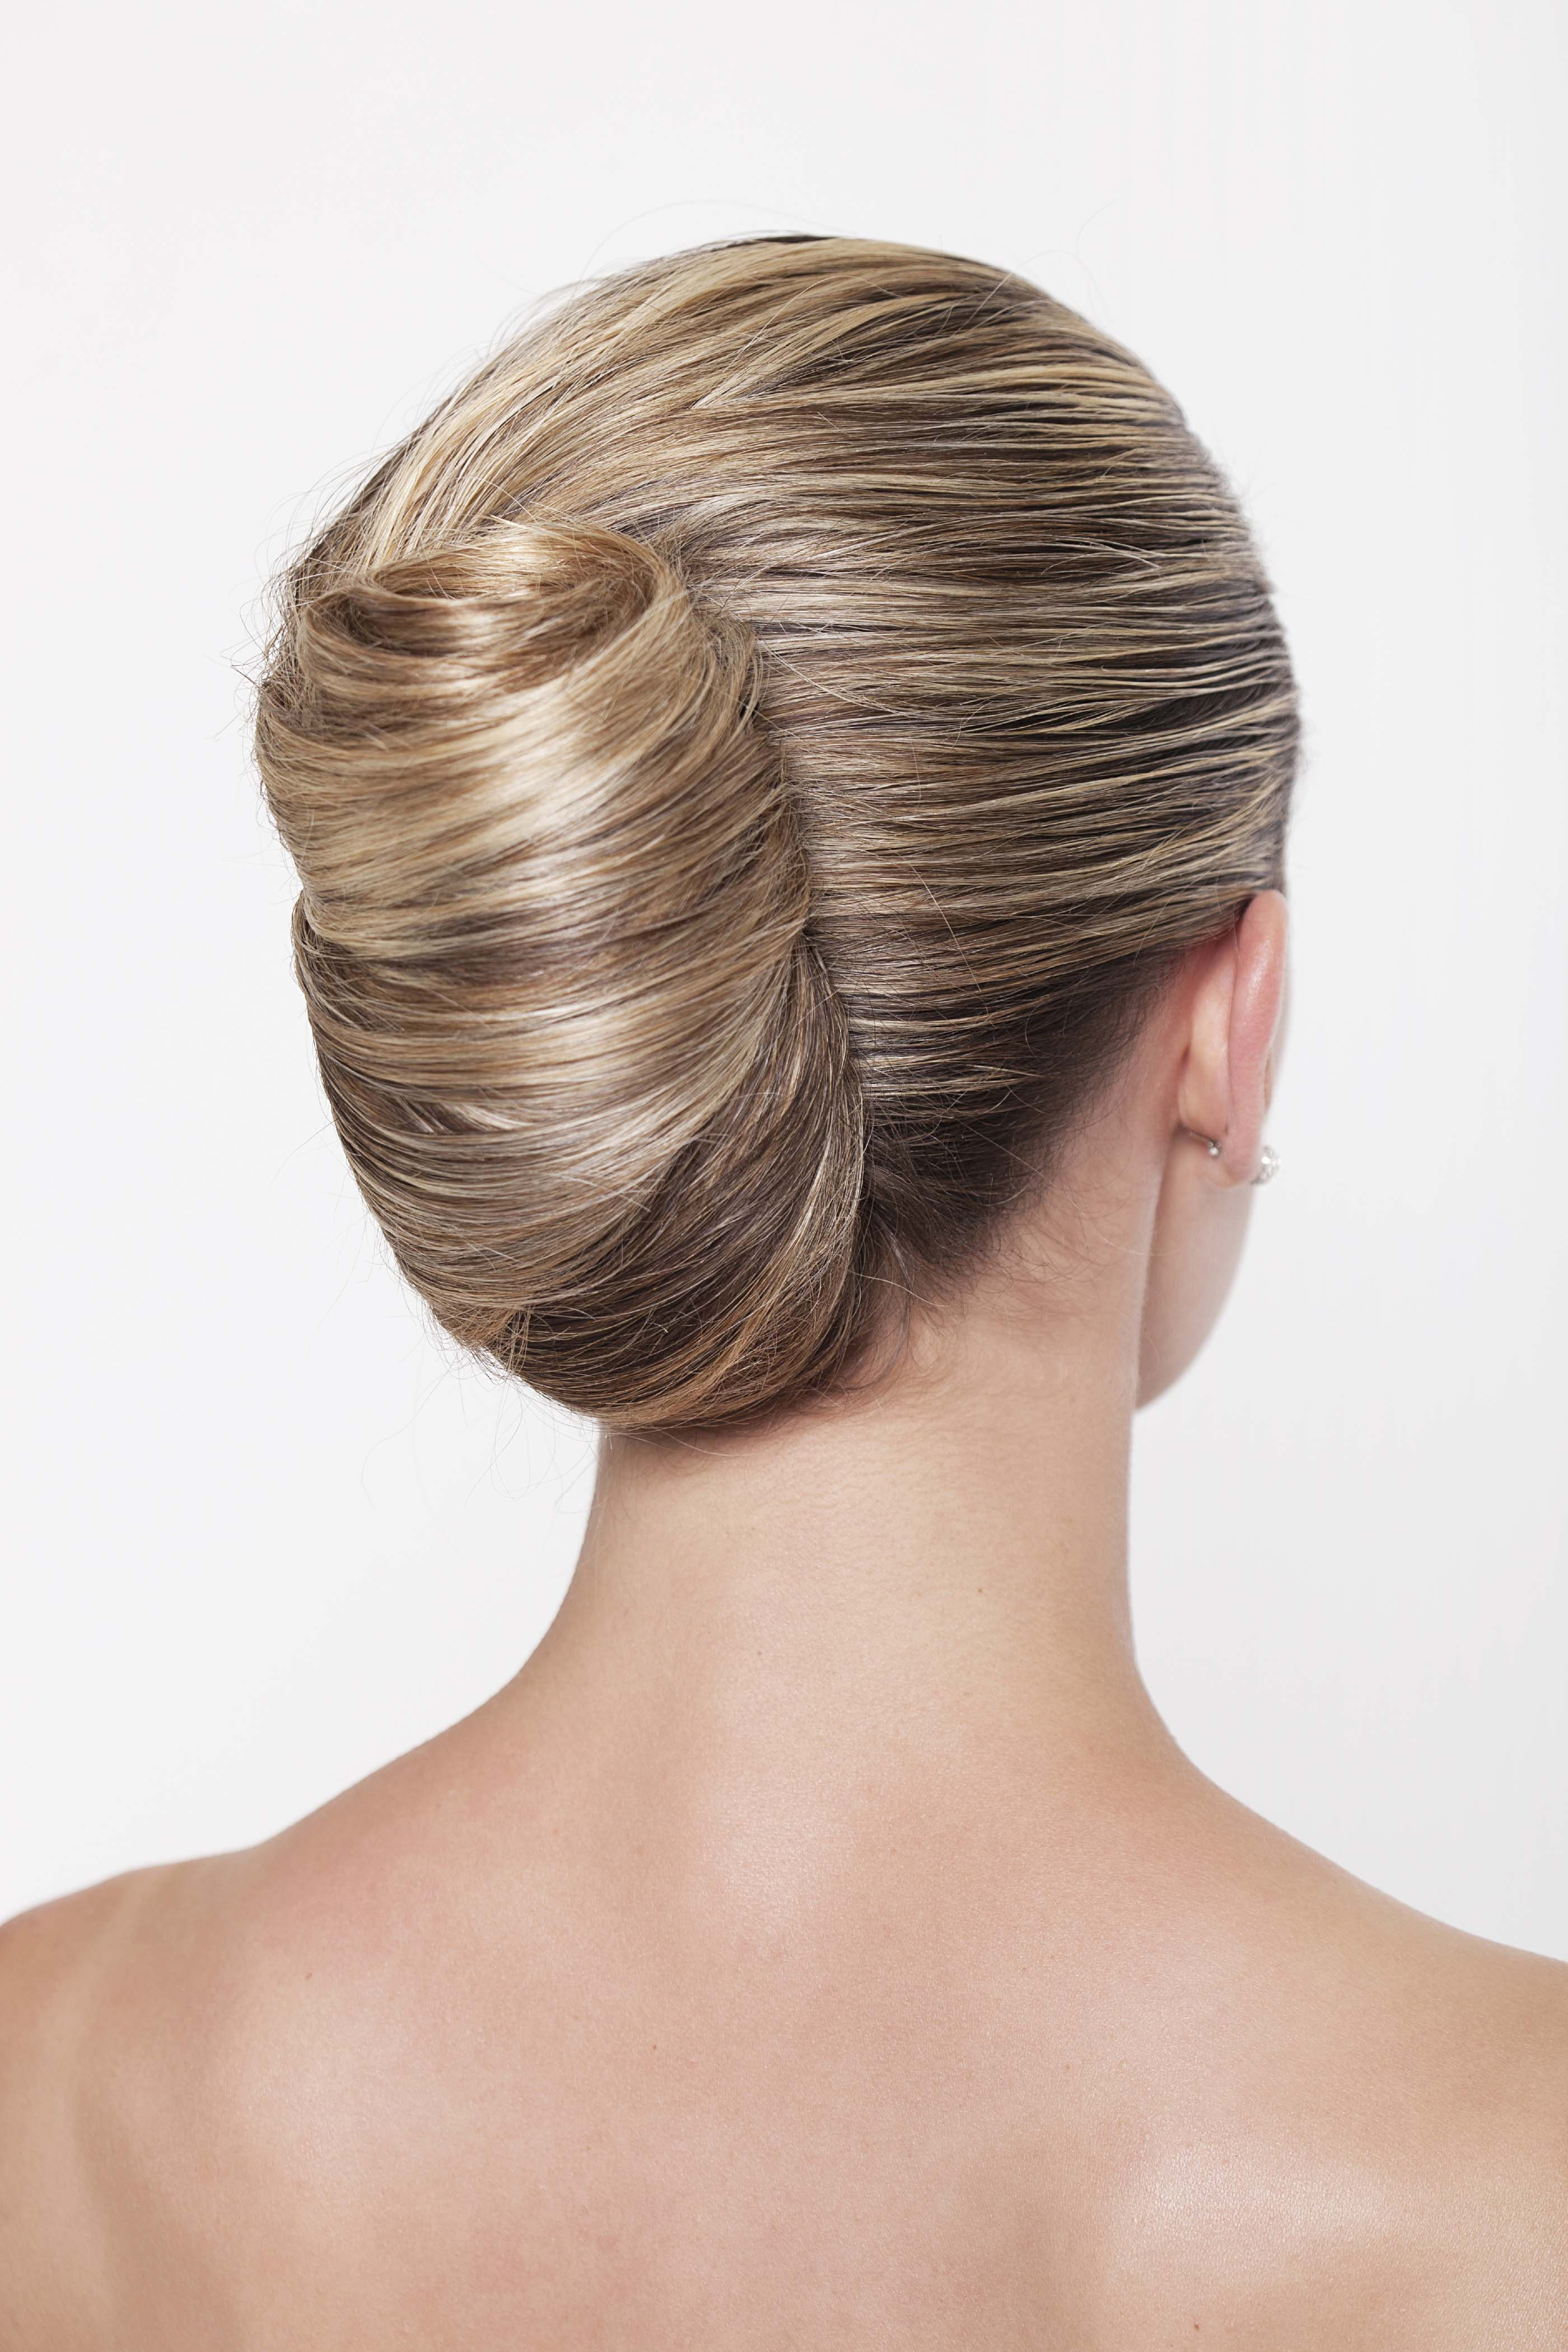 Stunning hairstyles for Broadway with the French Twist